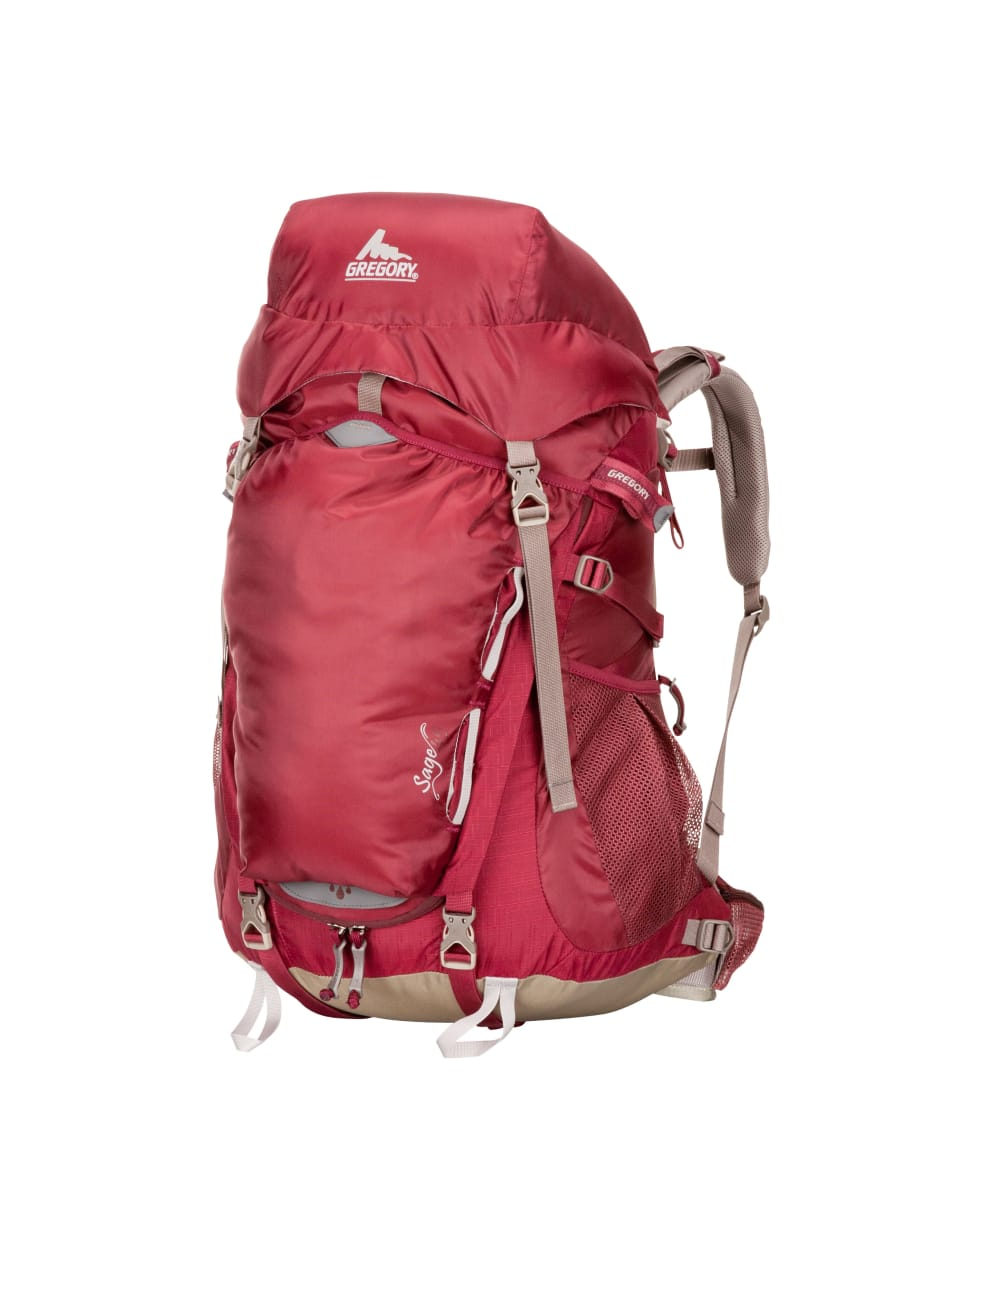 GREGORY Women's Sage 45 Backpack - ROSEWOOD RED